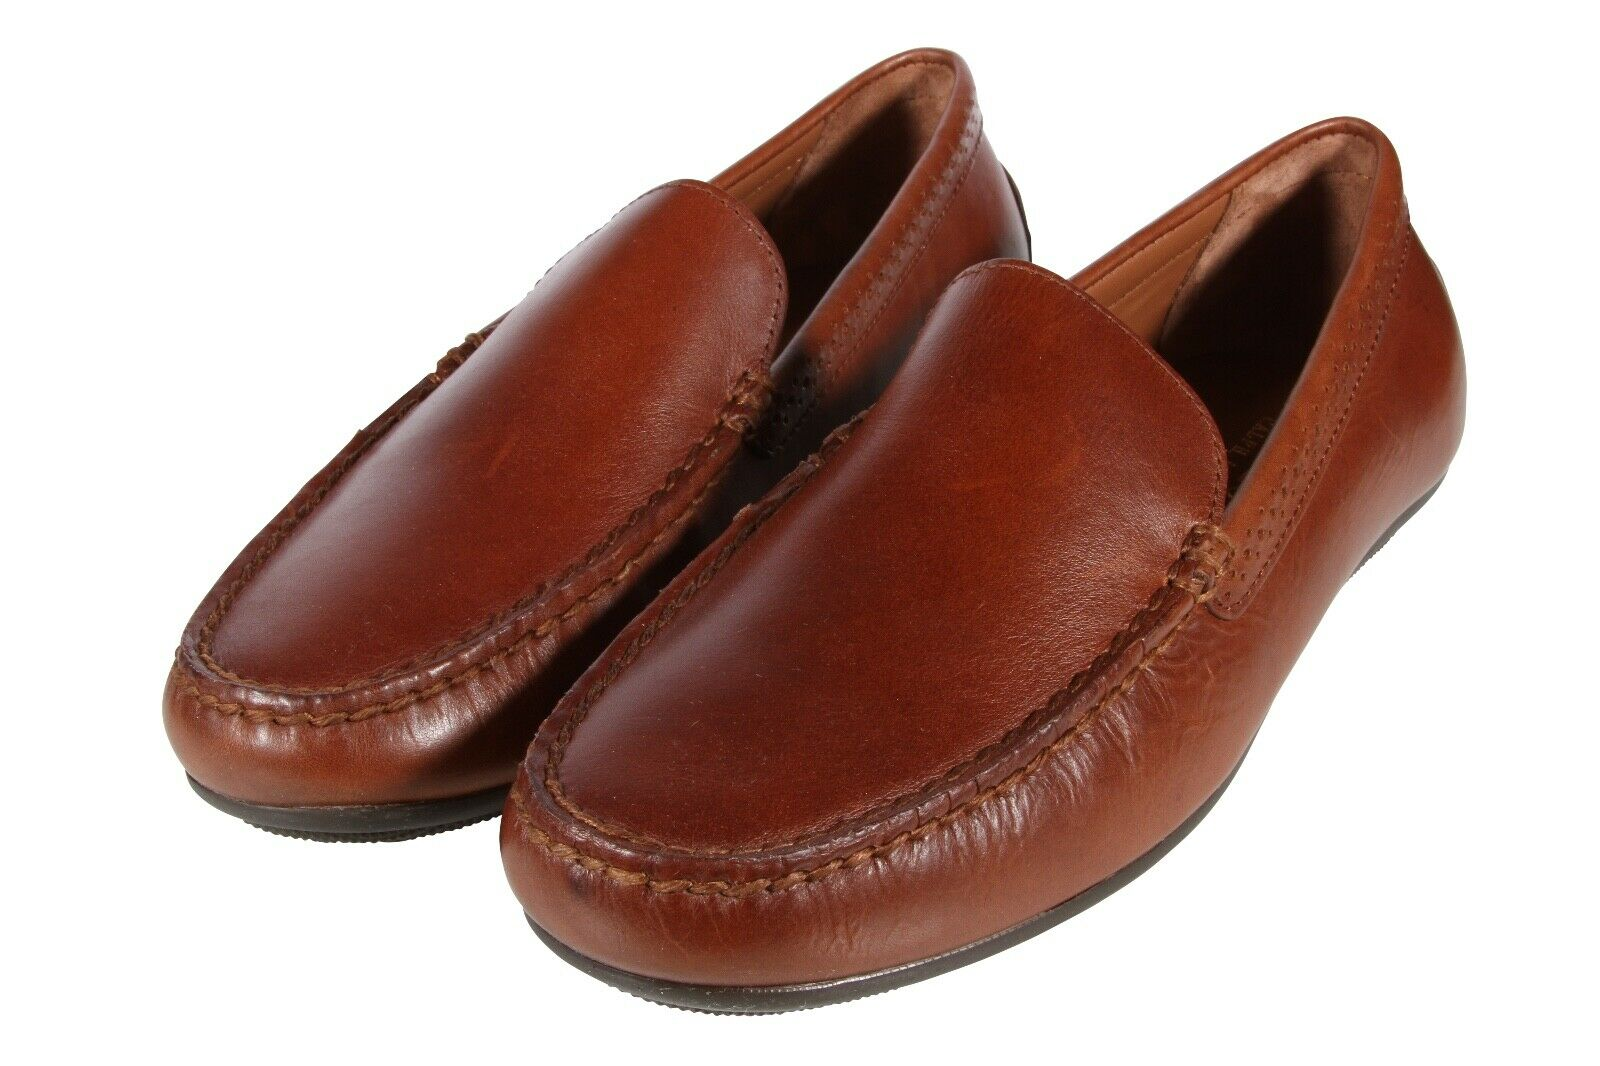 Polo Ralph Lauren Men's Shoes Redden Casual Driving Leather Loafers Polo Tan 1